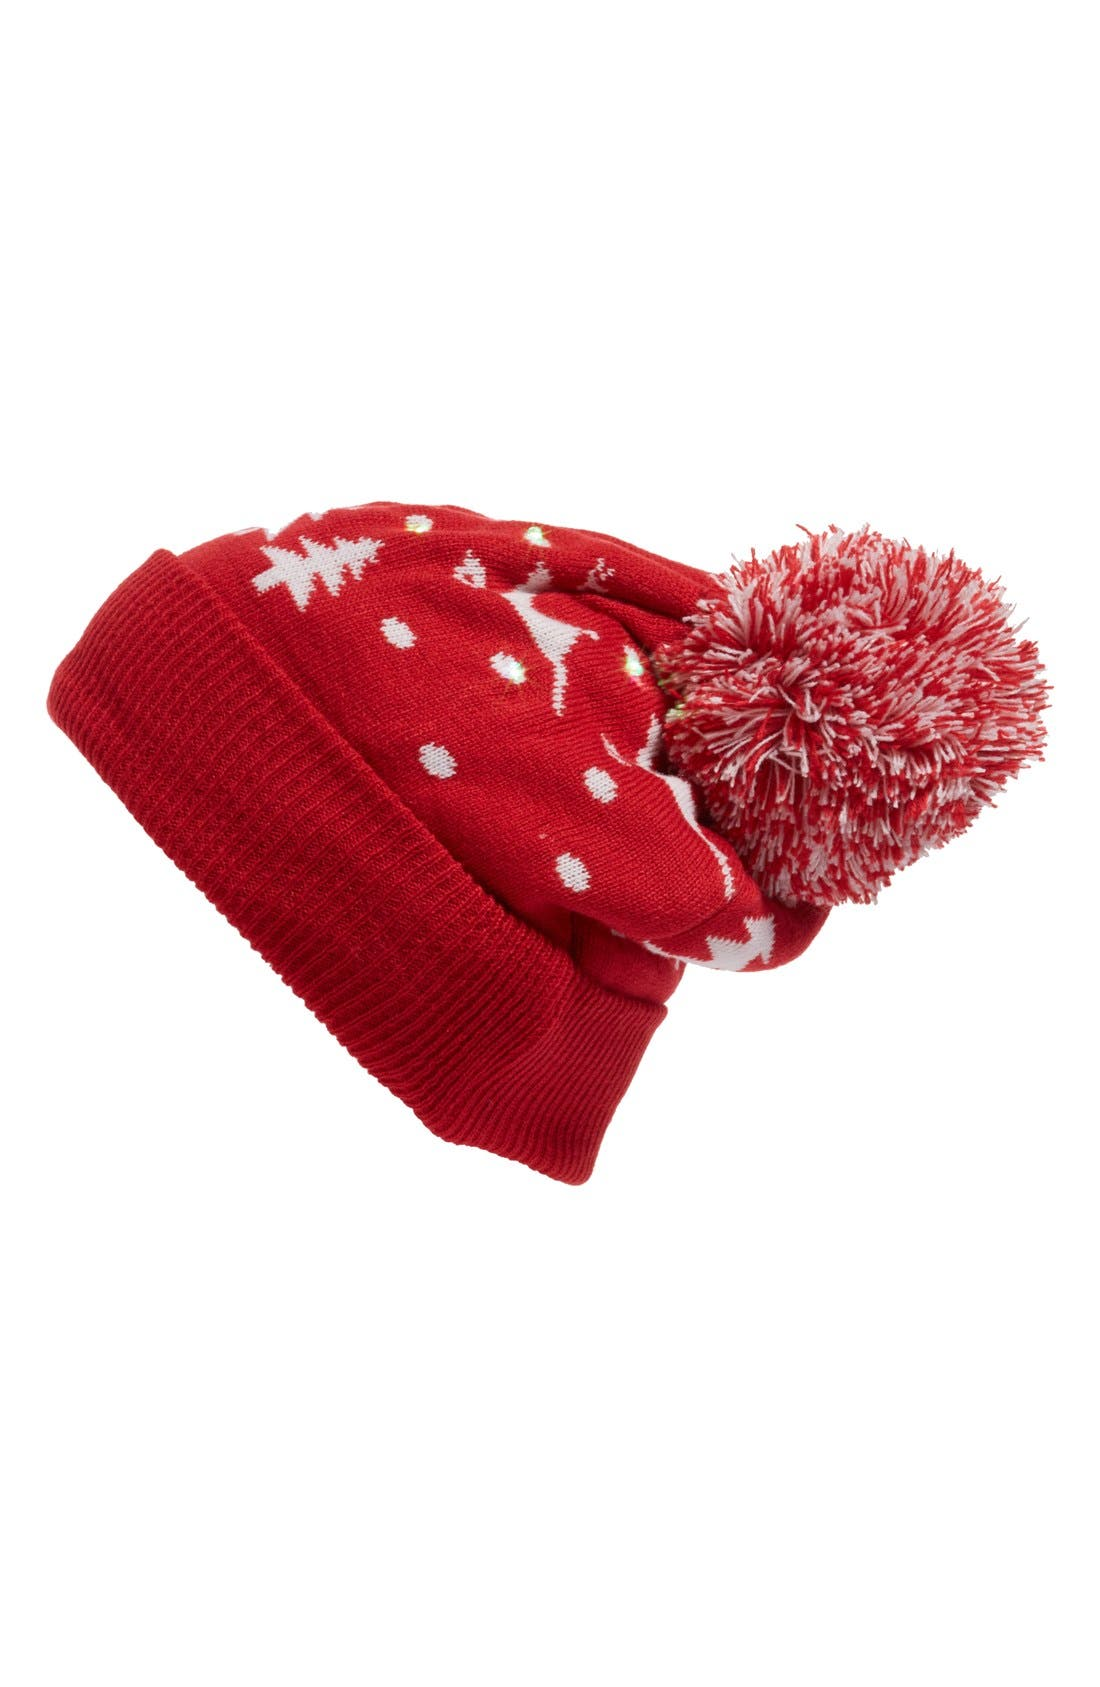 Snowy Lights Beanie,                         Main,                         color, Christmas Red